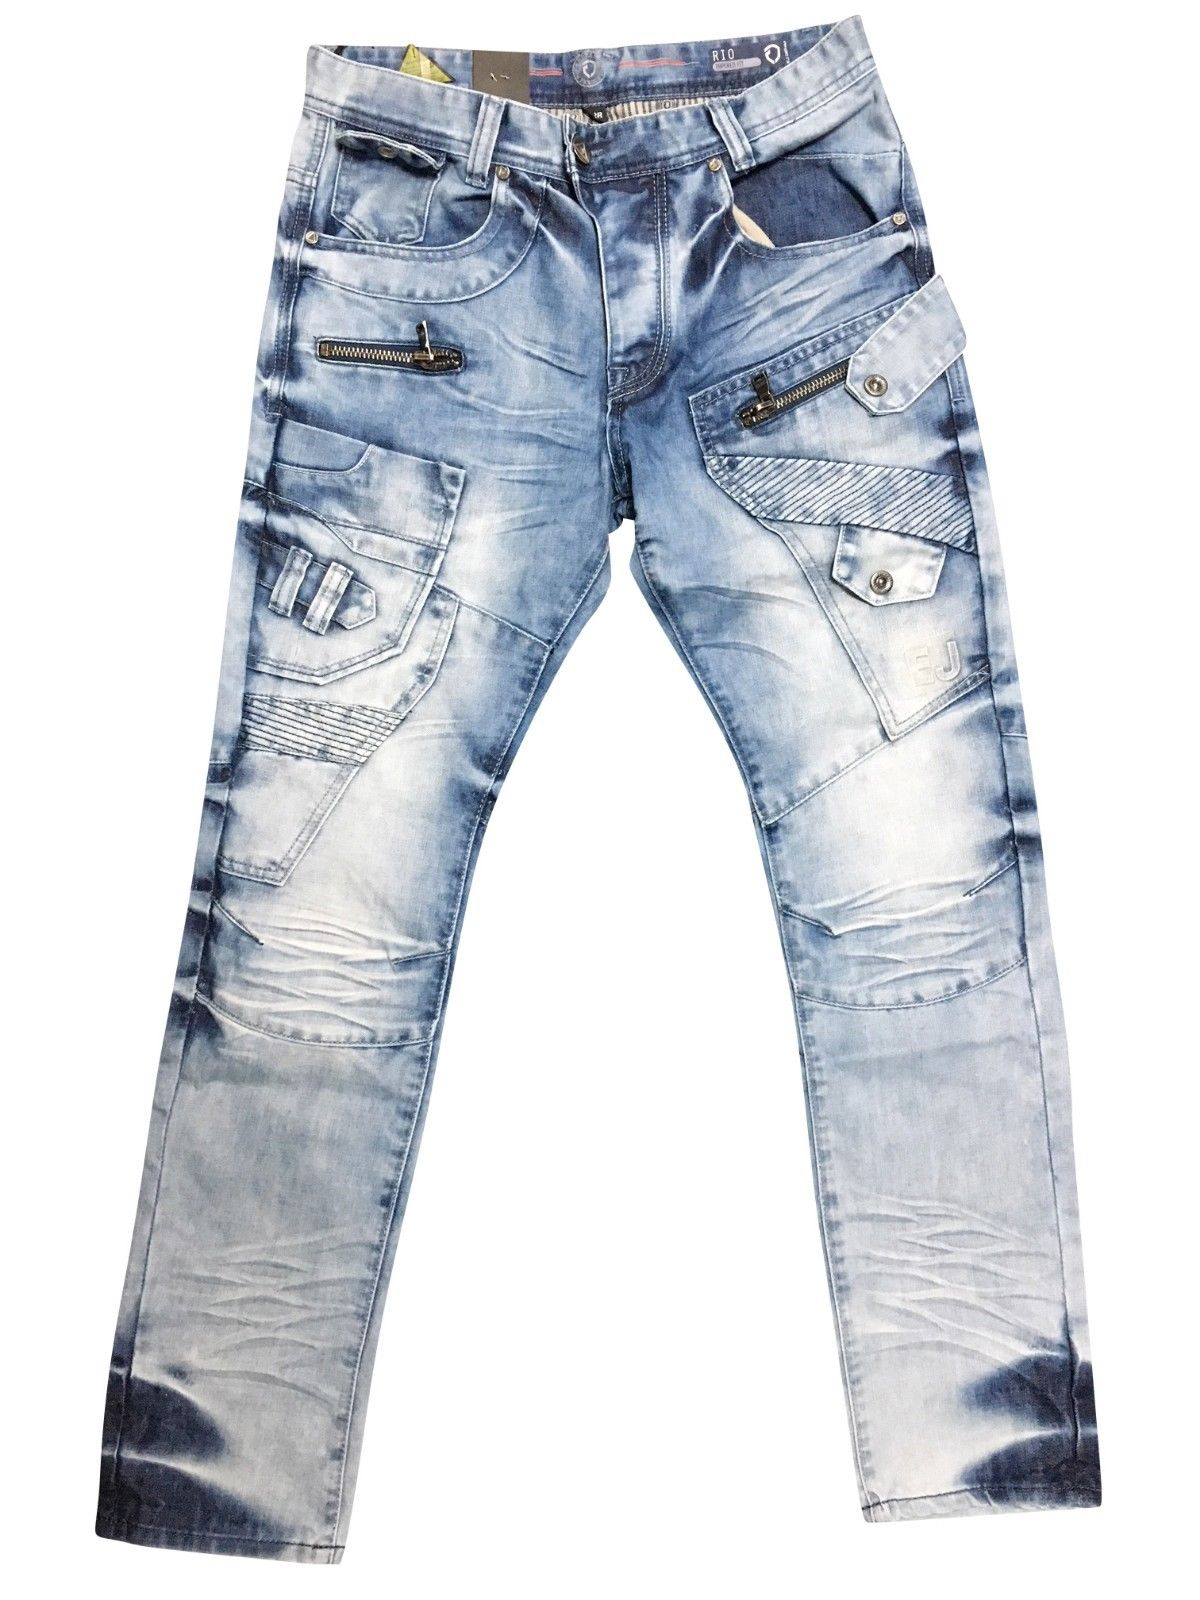 Mens Stonewashed Jeans